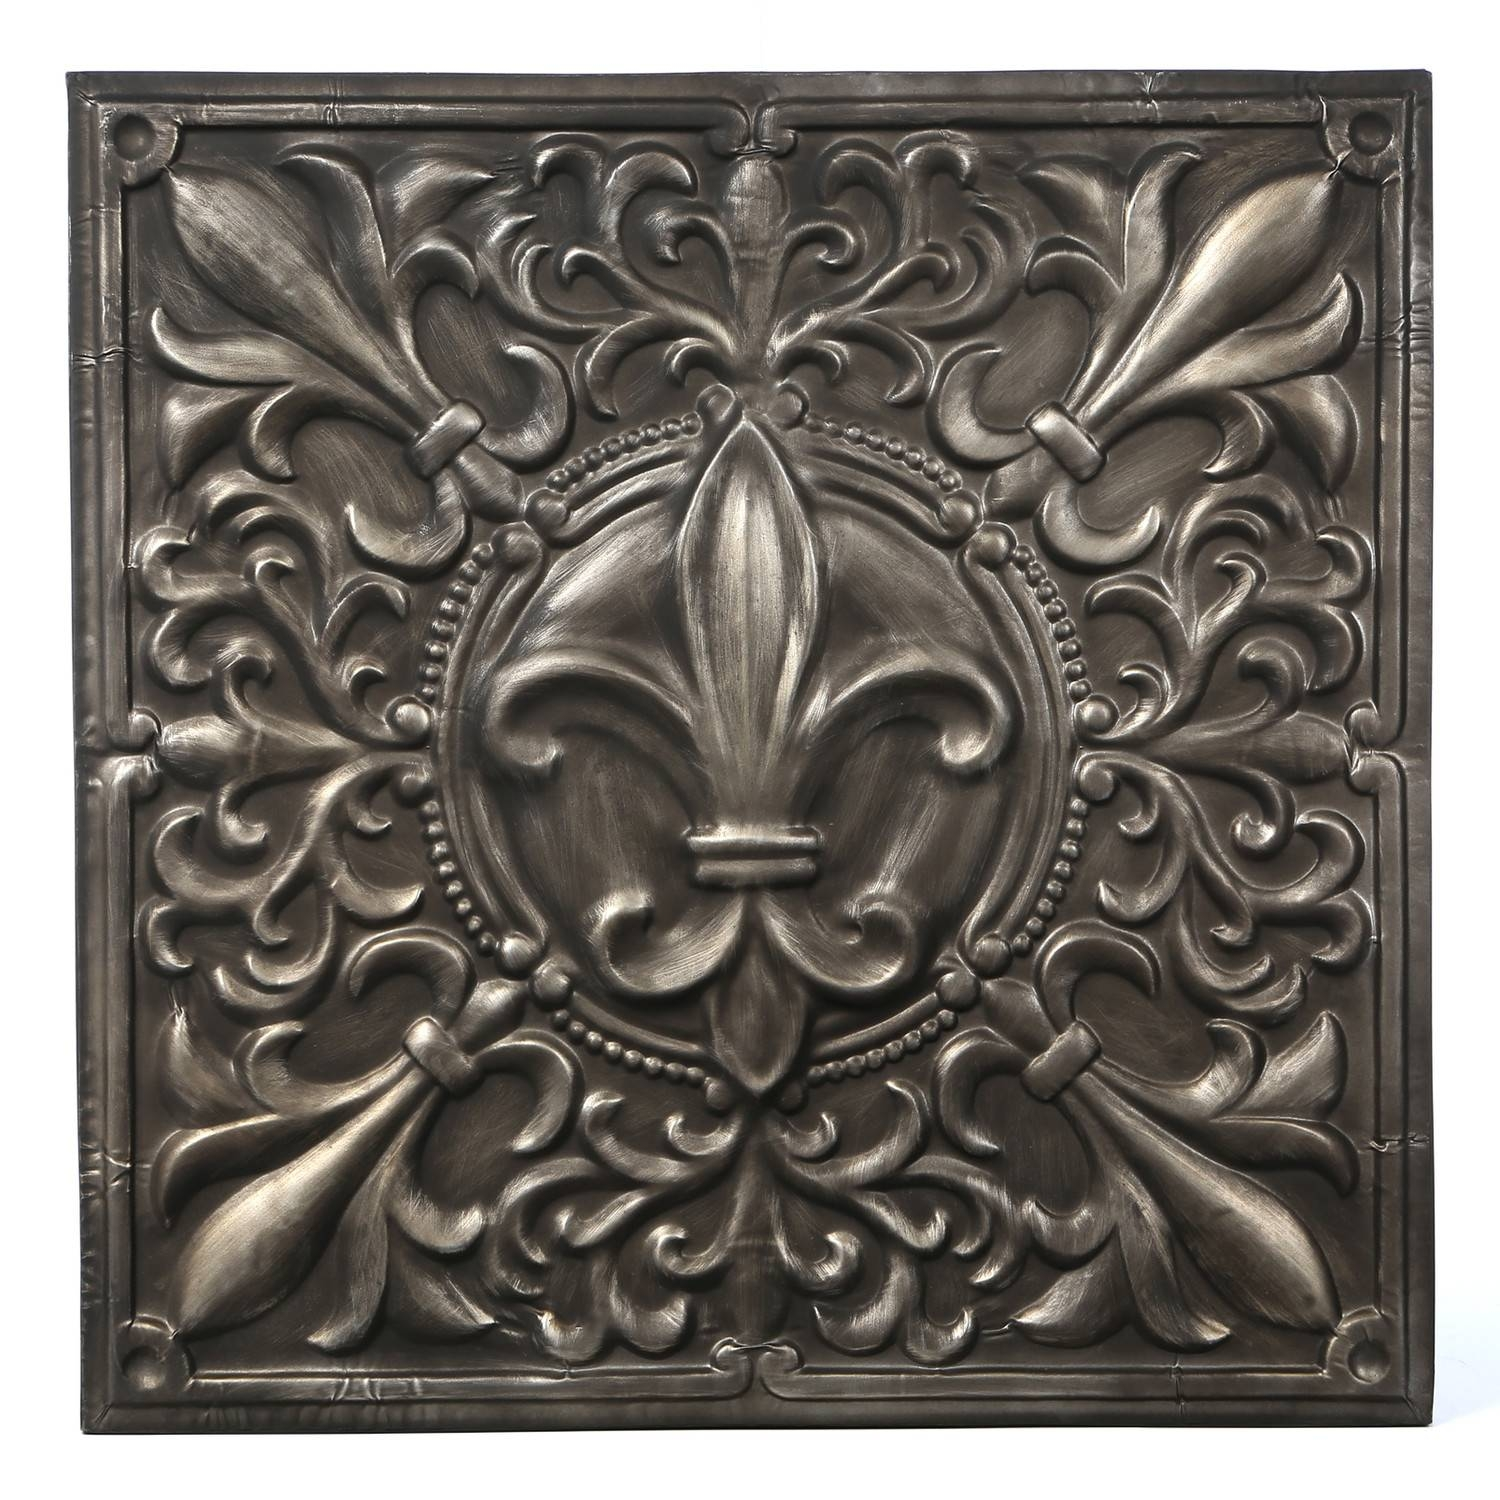 Fleur De Lis Home Decor Wall Art : Fleur De Lis Wall Decor Regarding Most Up To Date Fleur De Lis Metal Wall Art (View 6 of 25)